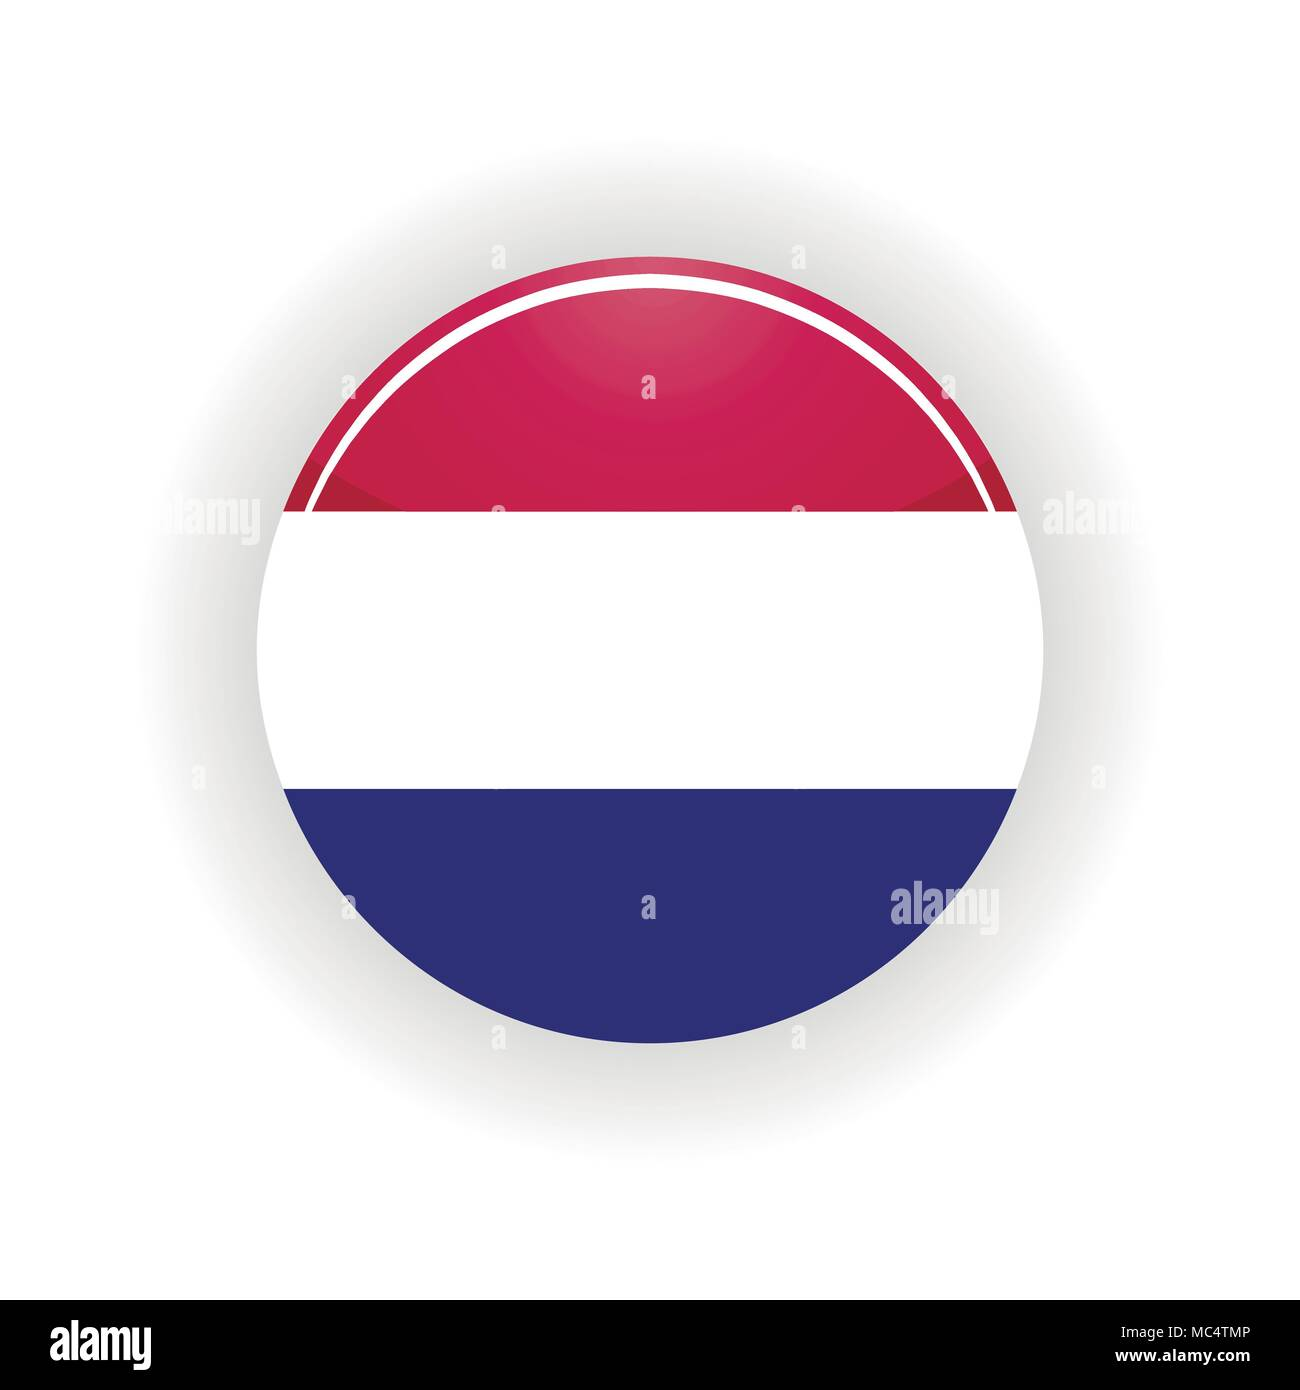 Netherlands icon circle - Stock Vector